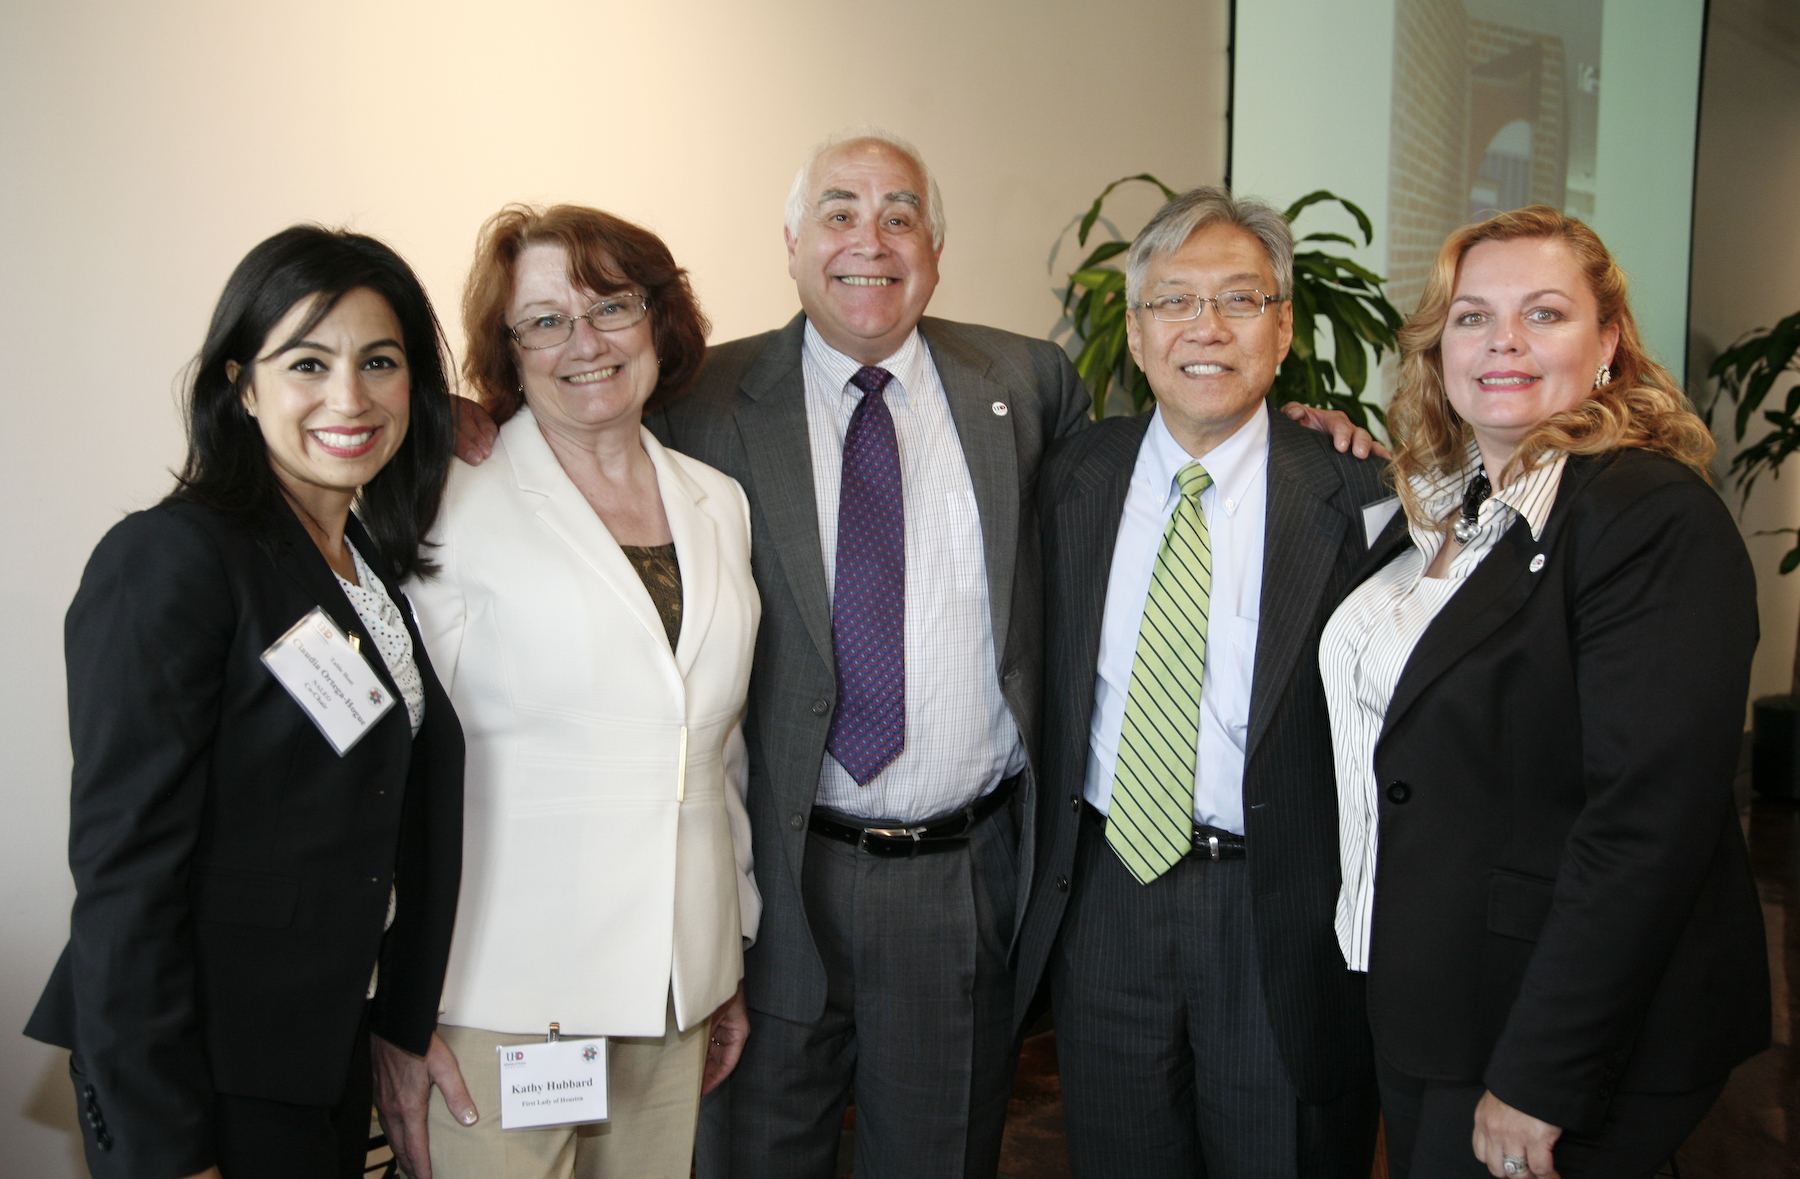 (From left to right):  Claudia Ortega-Hogue, Kathy Hubbard, Dr. Bill Flores, Gordon Quan and Dr. Noël Bezette-Flores gathered at UHD this week for Houston's Citizenship Month 2013 luncheon.